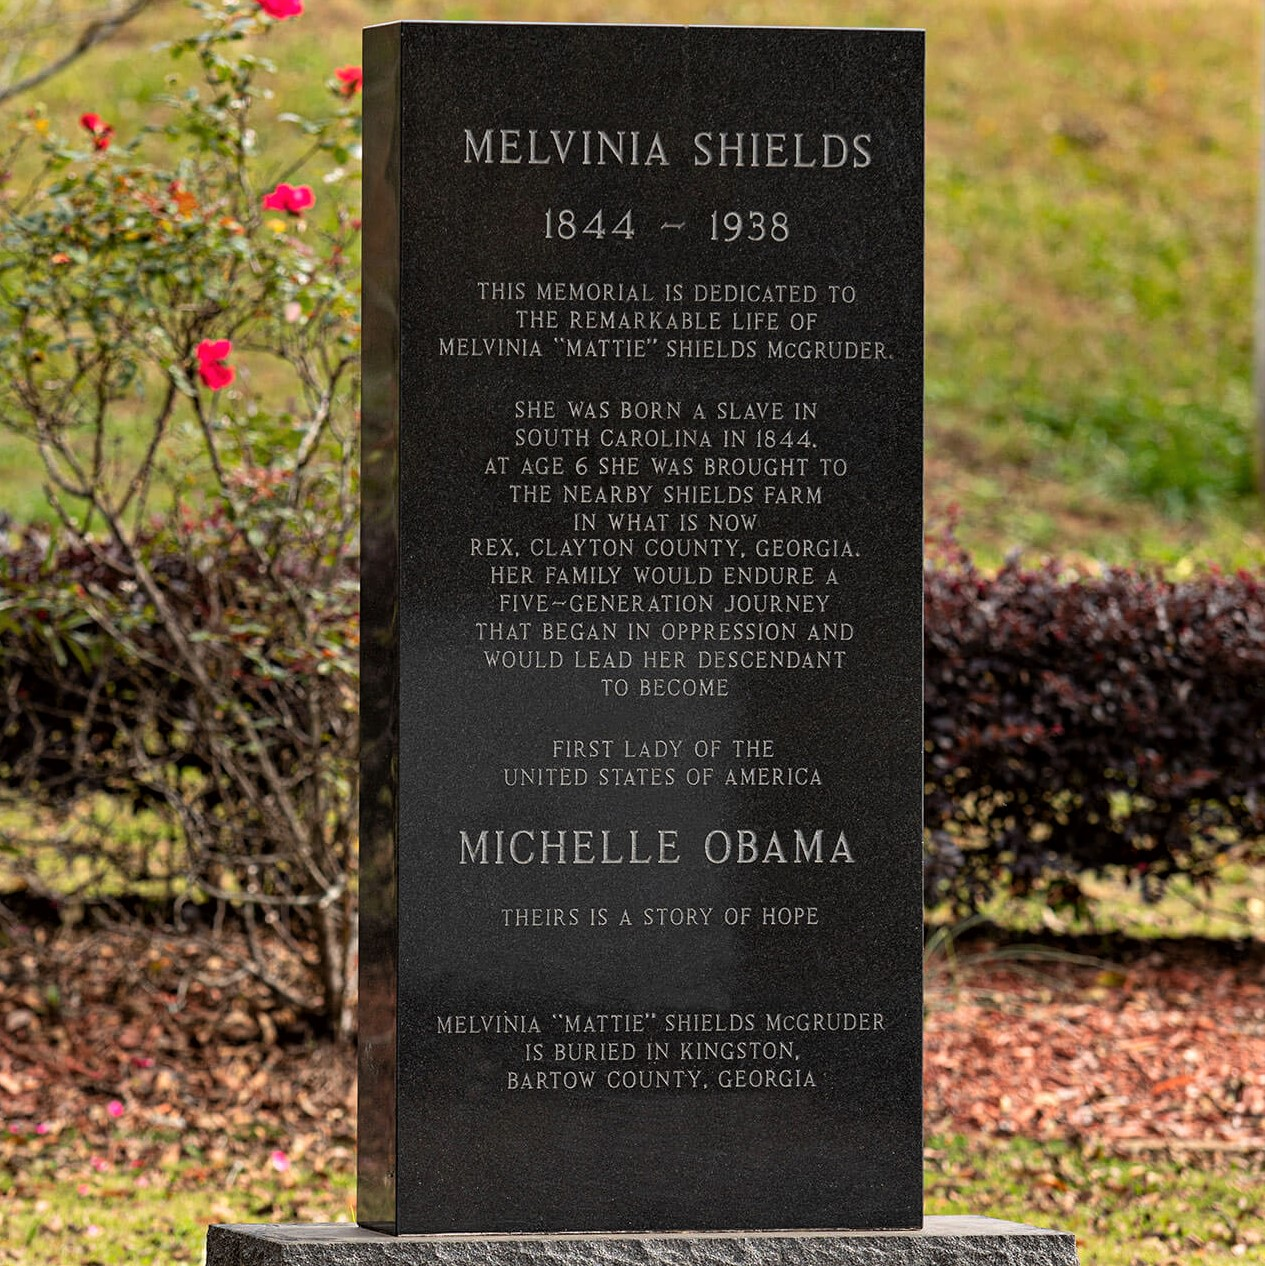 Monument in memory of Michelle Obama's ancestor, Melvinia Shields, who was born a slave five generations ago